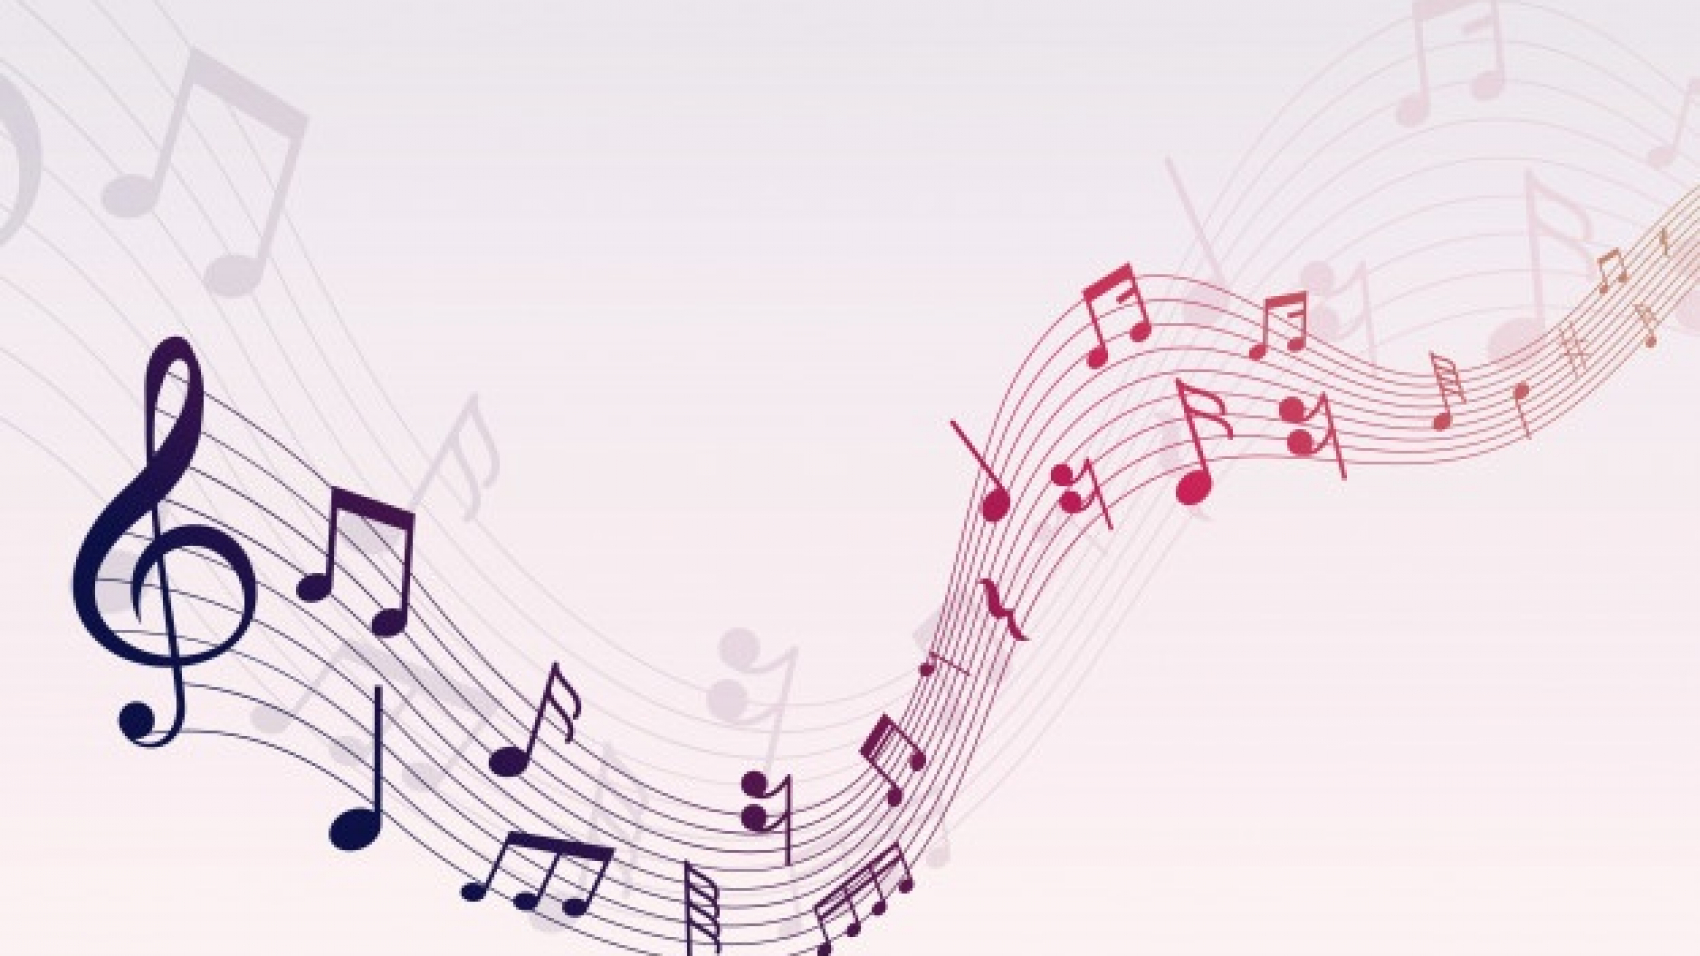 beautiful-musical-notes-wave-background-design_1017-11415